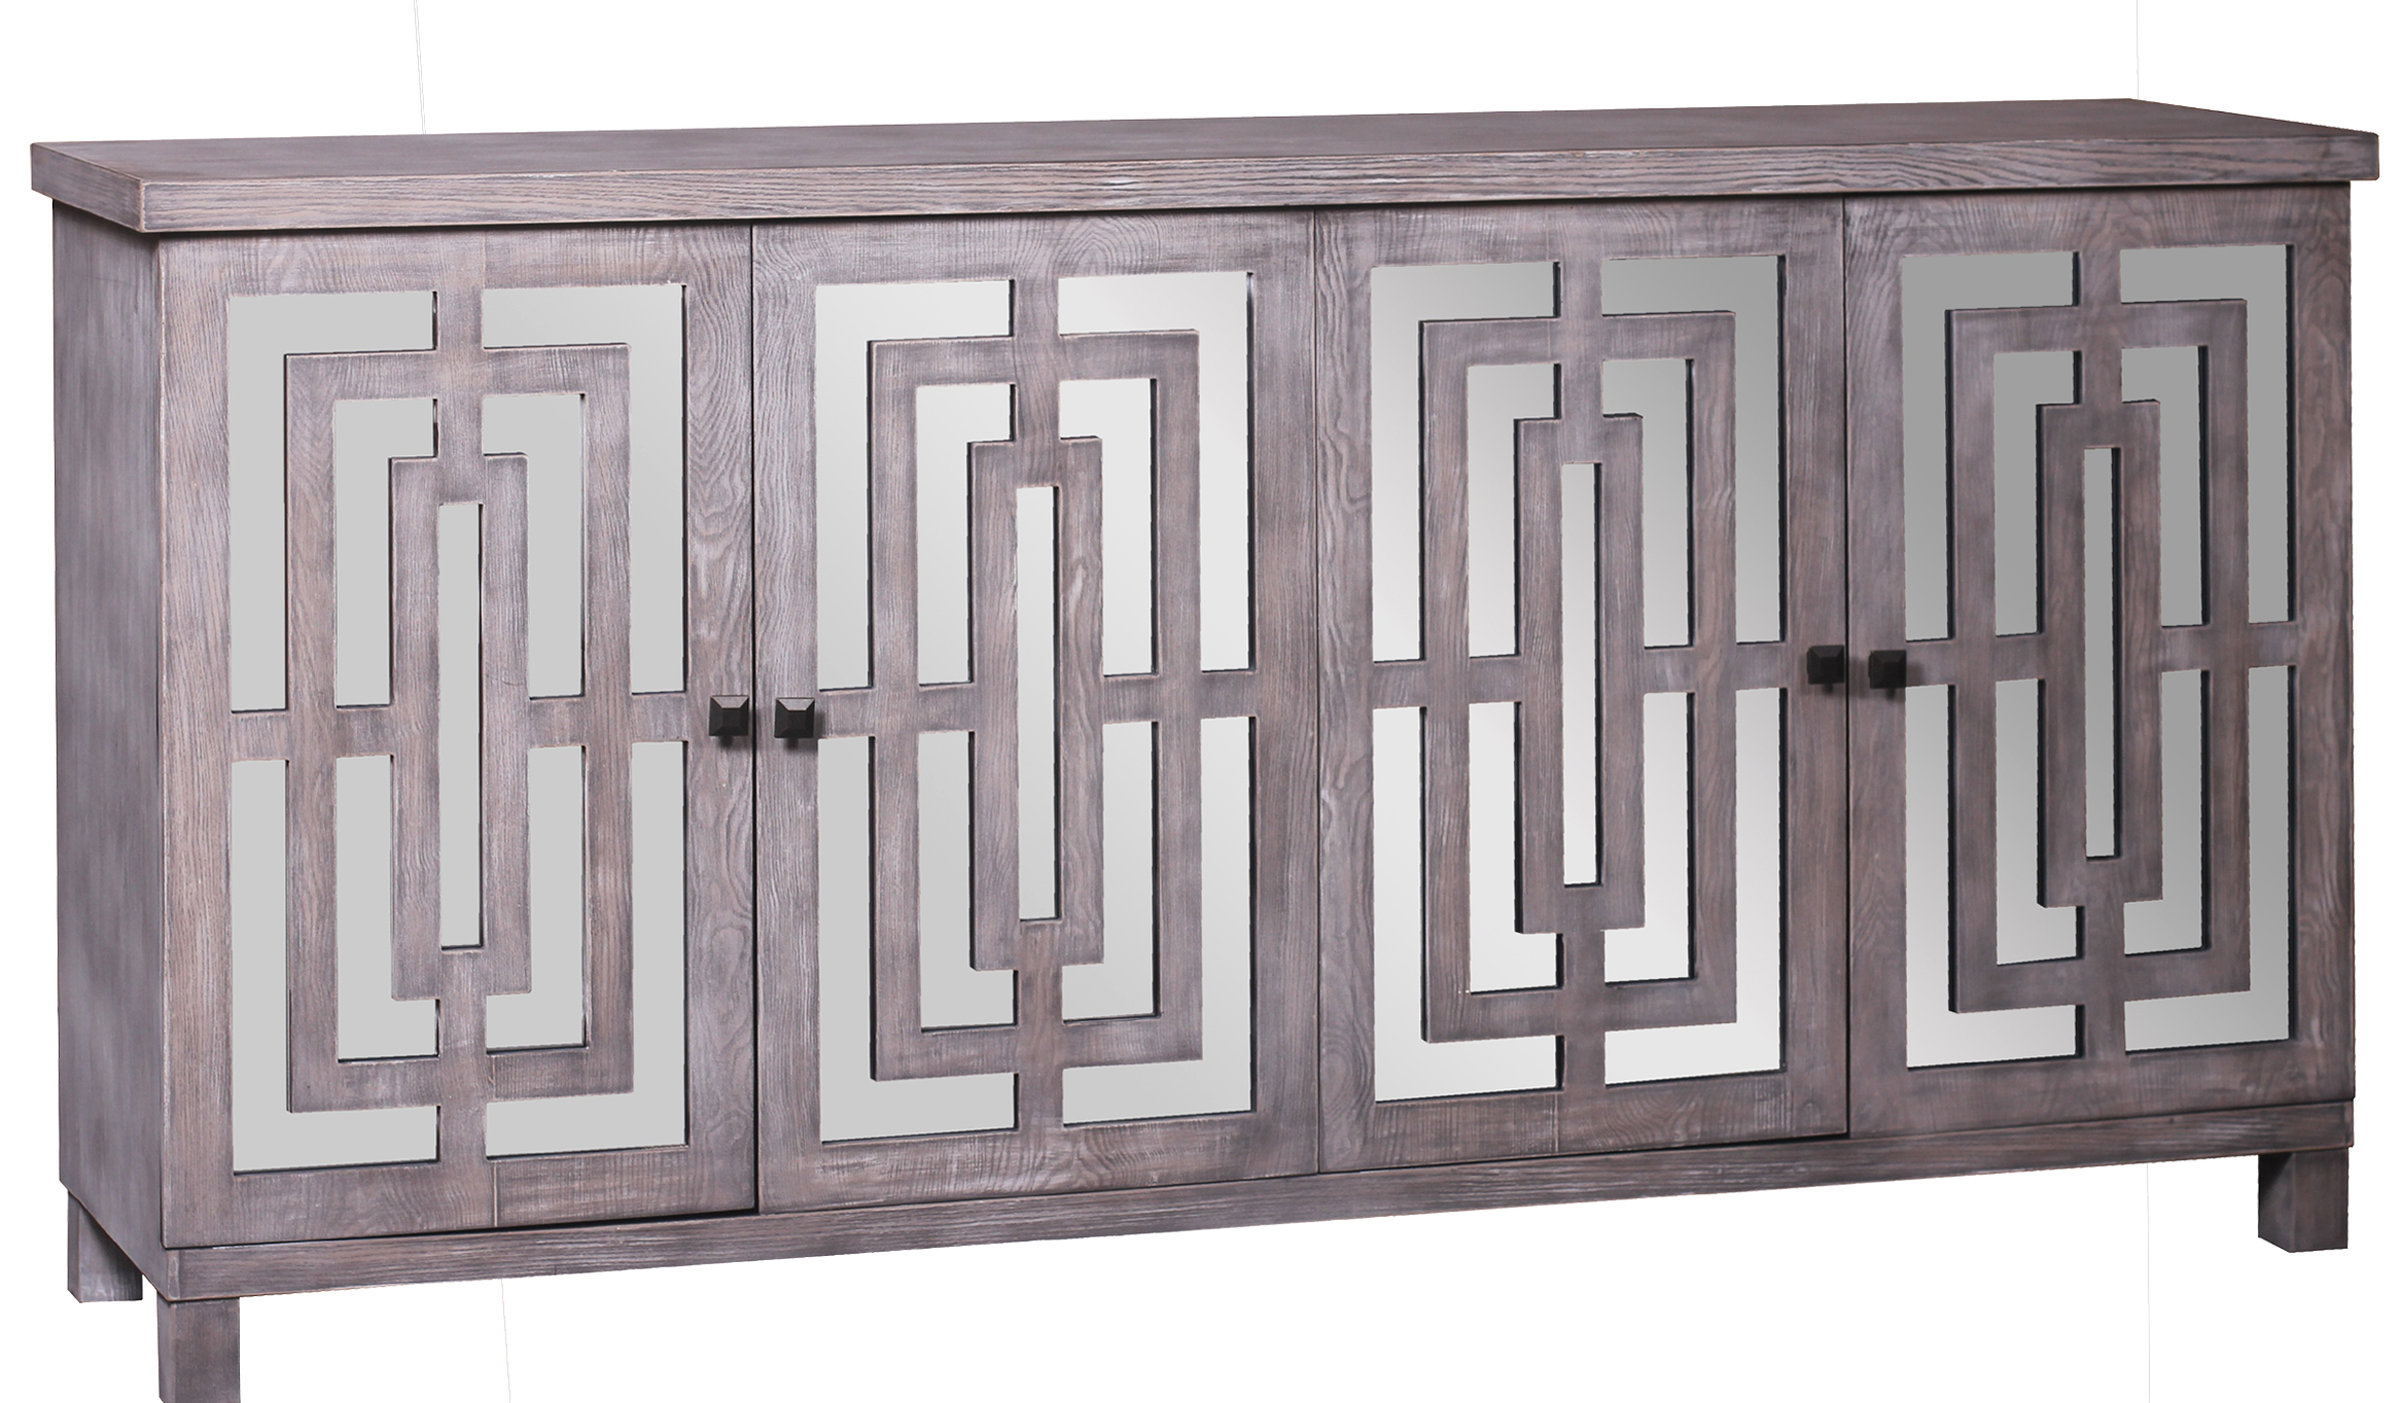 Modern & Contemporary Kieth 4 Door Credenza | Allmodern For Kieth 4 Door Credenzas (View 5 of 20)